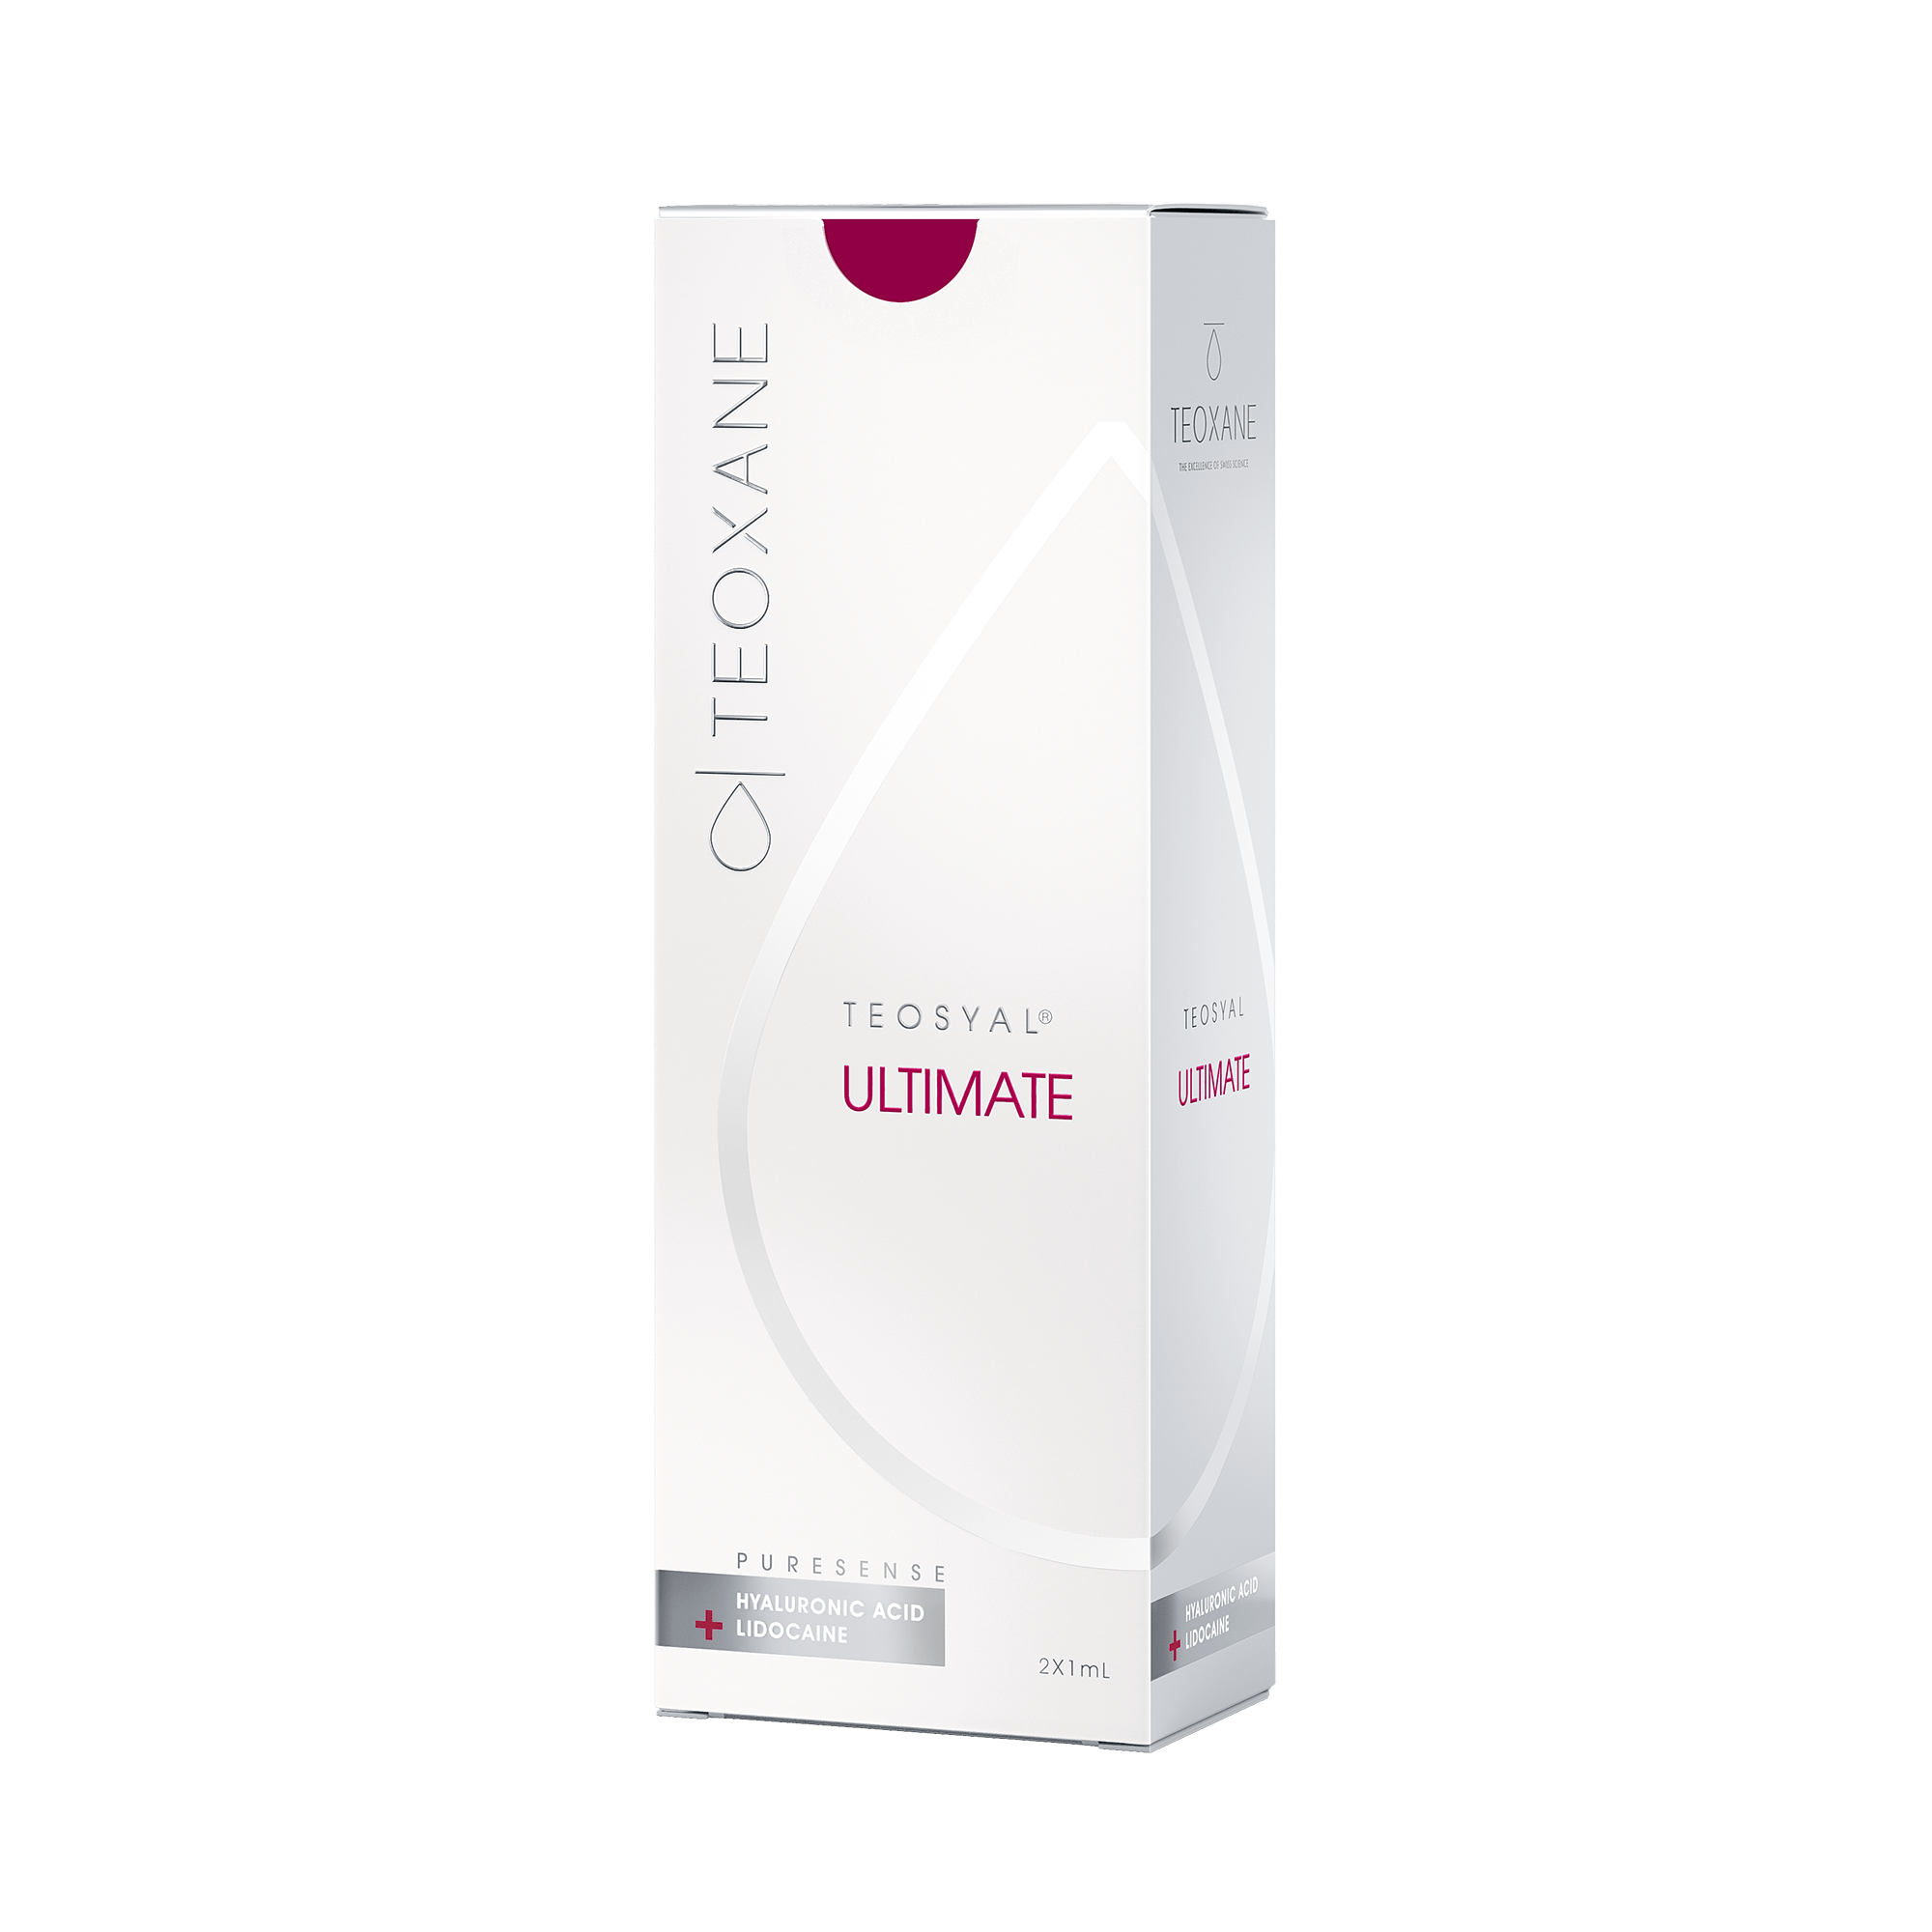 Teoxane - TEOSYAL PureSense Ultimate 1 x 3ml - DANYCARE